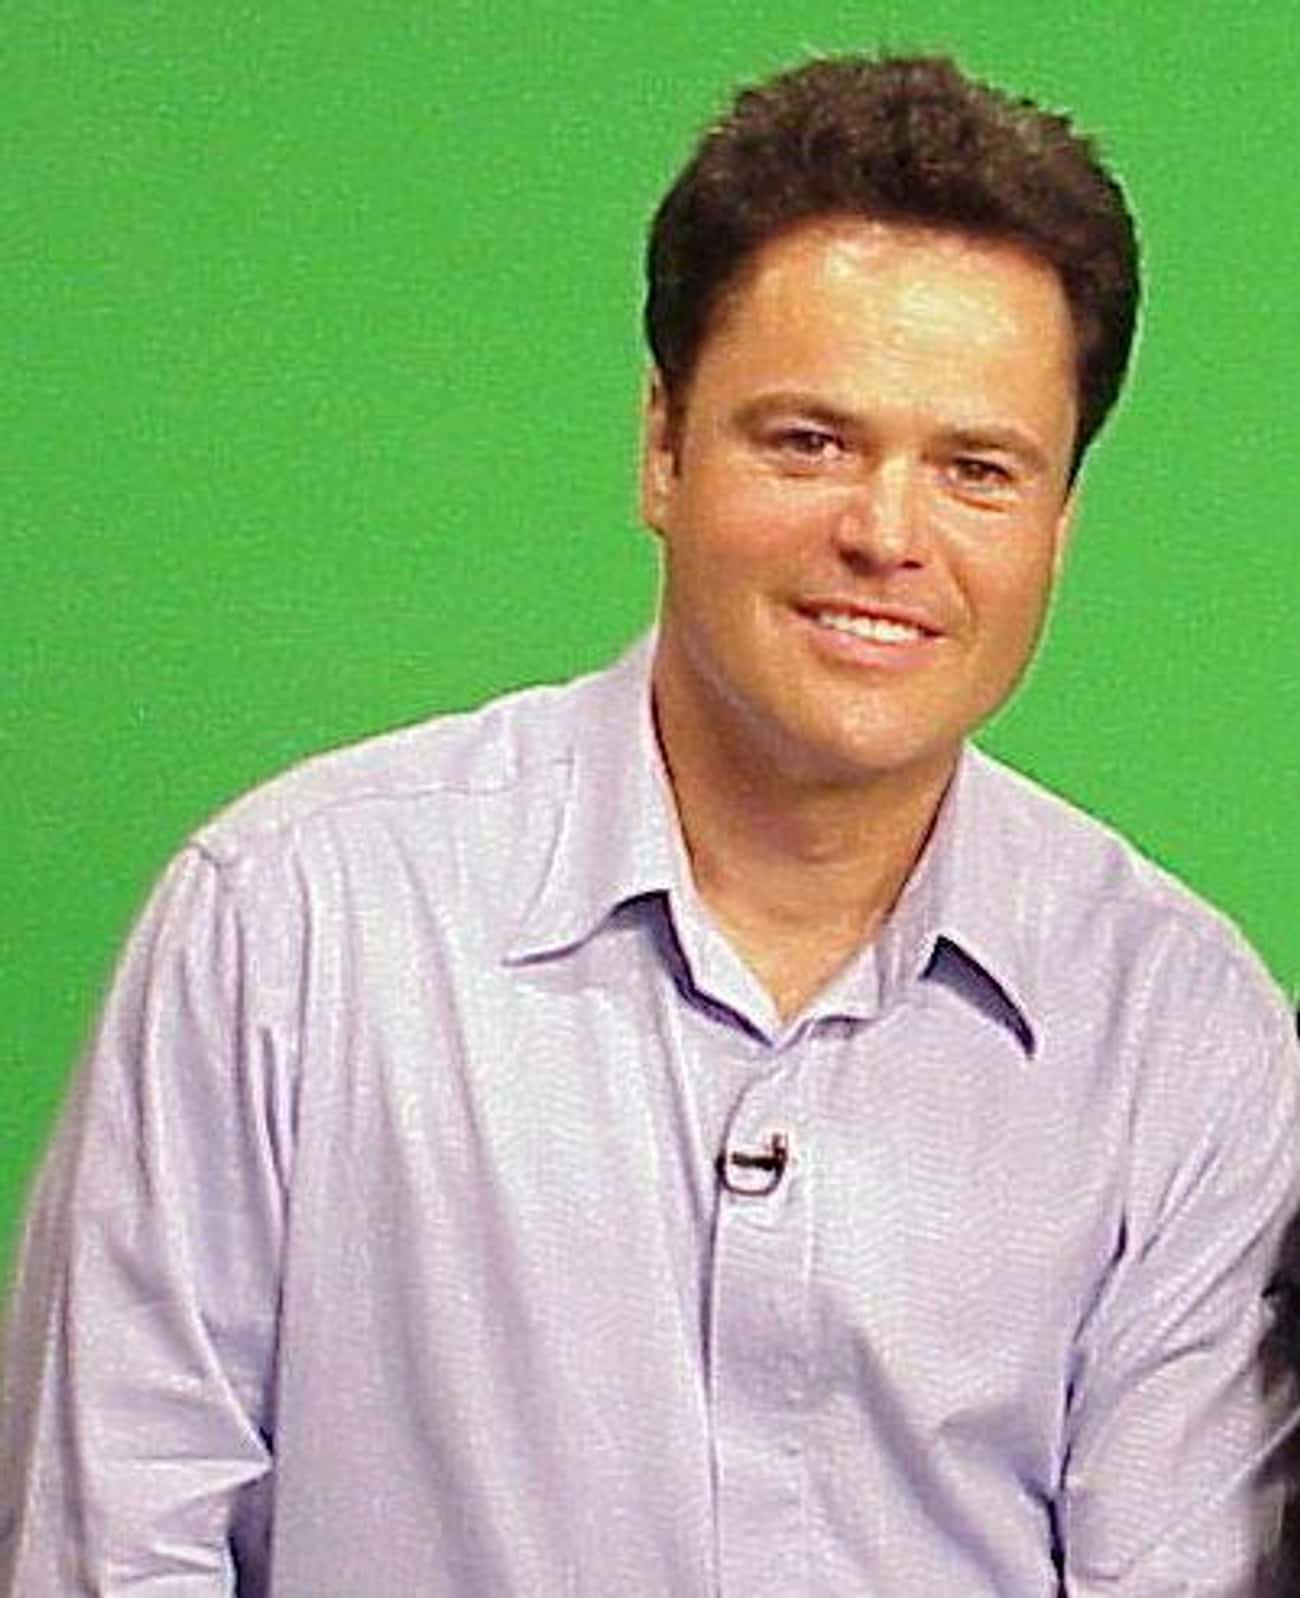 Donny Osmond - Now is listed (or ranked) 2 on the list The Most Popular Teen Idol Guys of All Time (Then and Now)